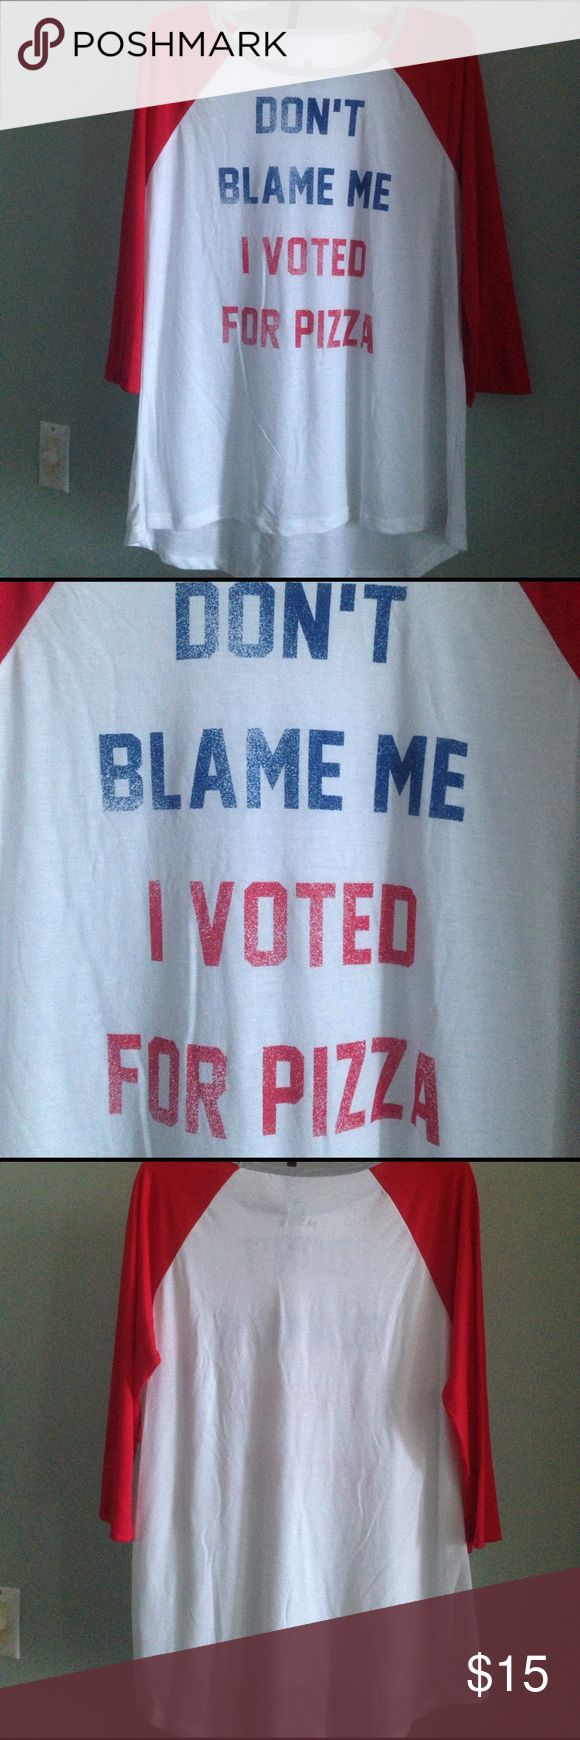 """GRAPHIC BASEBALL TEE Details - Says """"Don't Blame Me I Voted for Pizza Graphic Baseball Tee - Gray neckline, Red Sleeves - Size XL - Approx. 26"""" From Top to Bottom of Hem;  21"""" Pit to Pit - NWT  Fiber Content: 65% Polyester, 35% Rayon Tops Tees - Long Sleeve"""